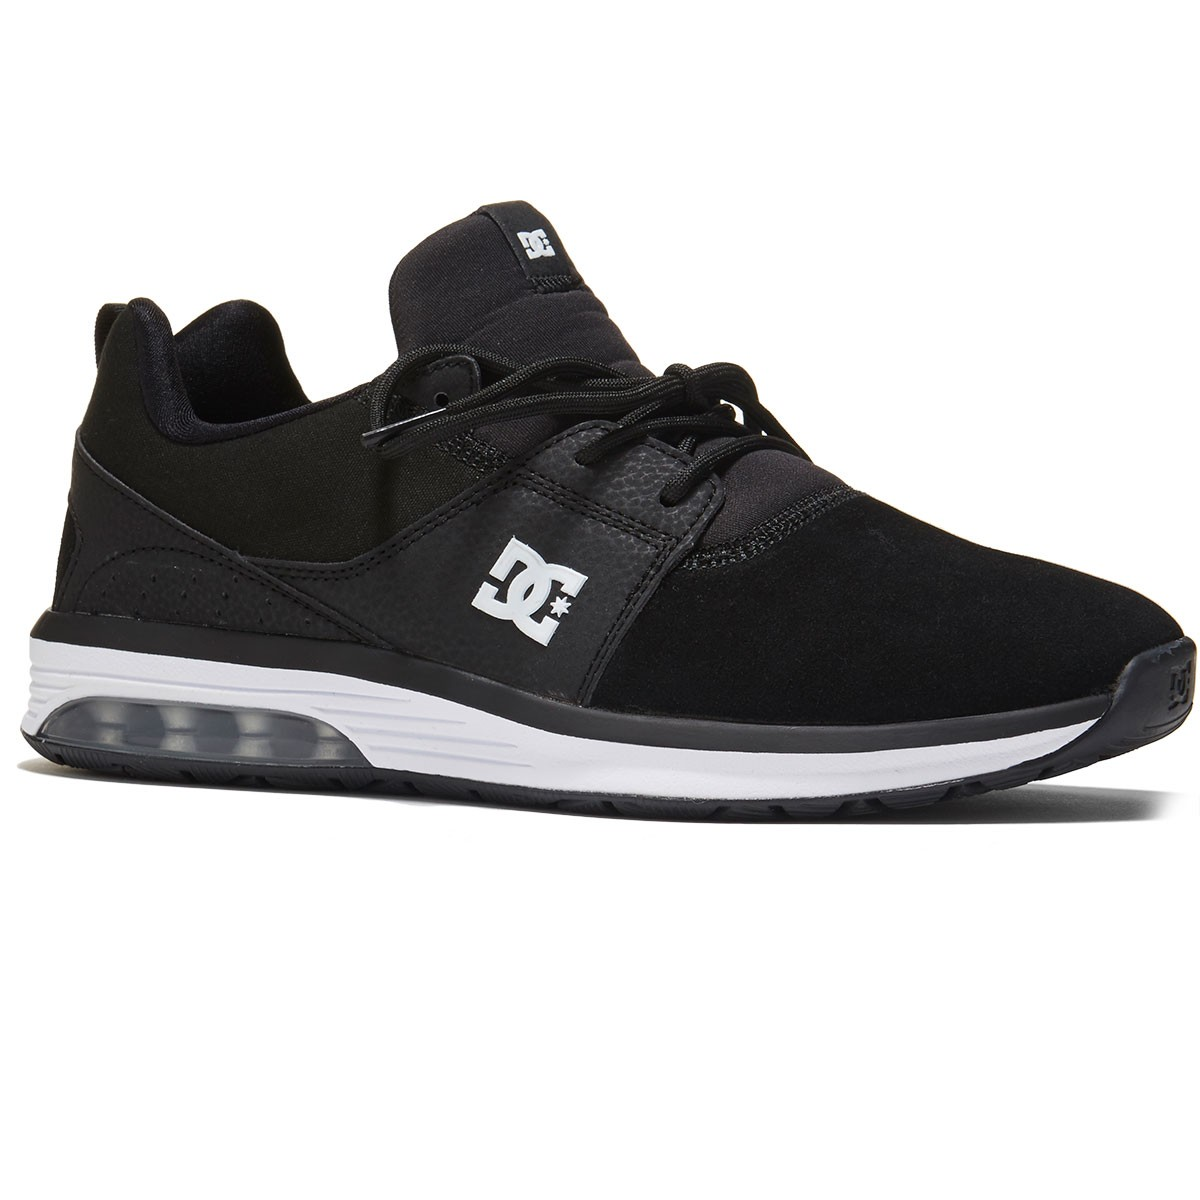 DC Heathrow IA Shoes - Black - 8.0 6b689c7cc3